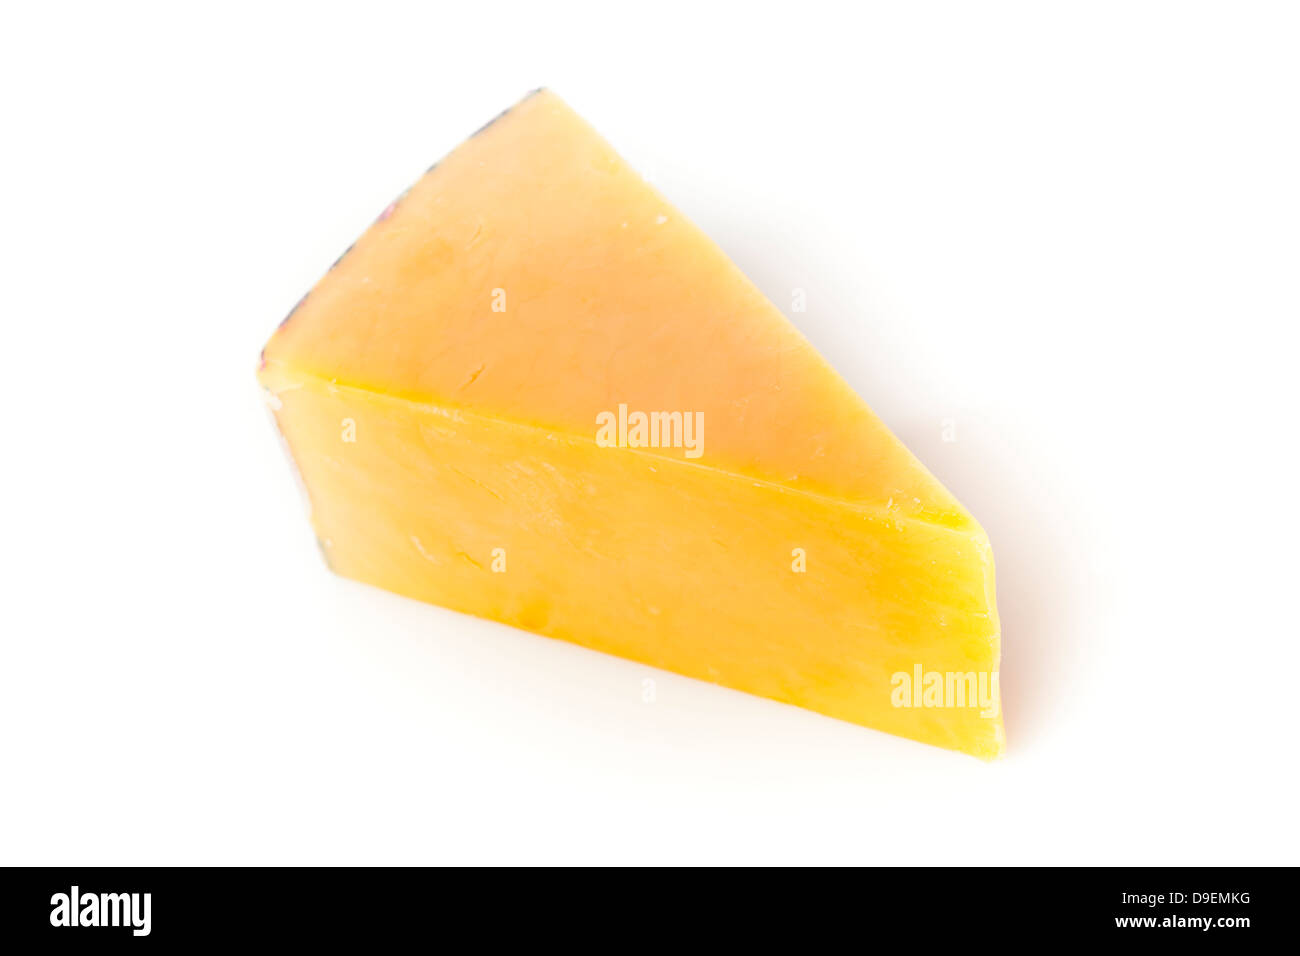 Traditional Yellow Cheddar Cheese on a background - Stock Image